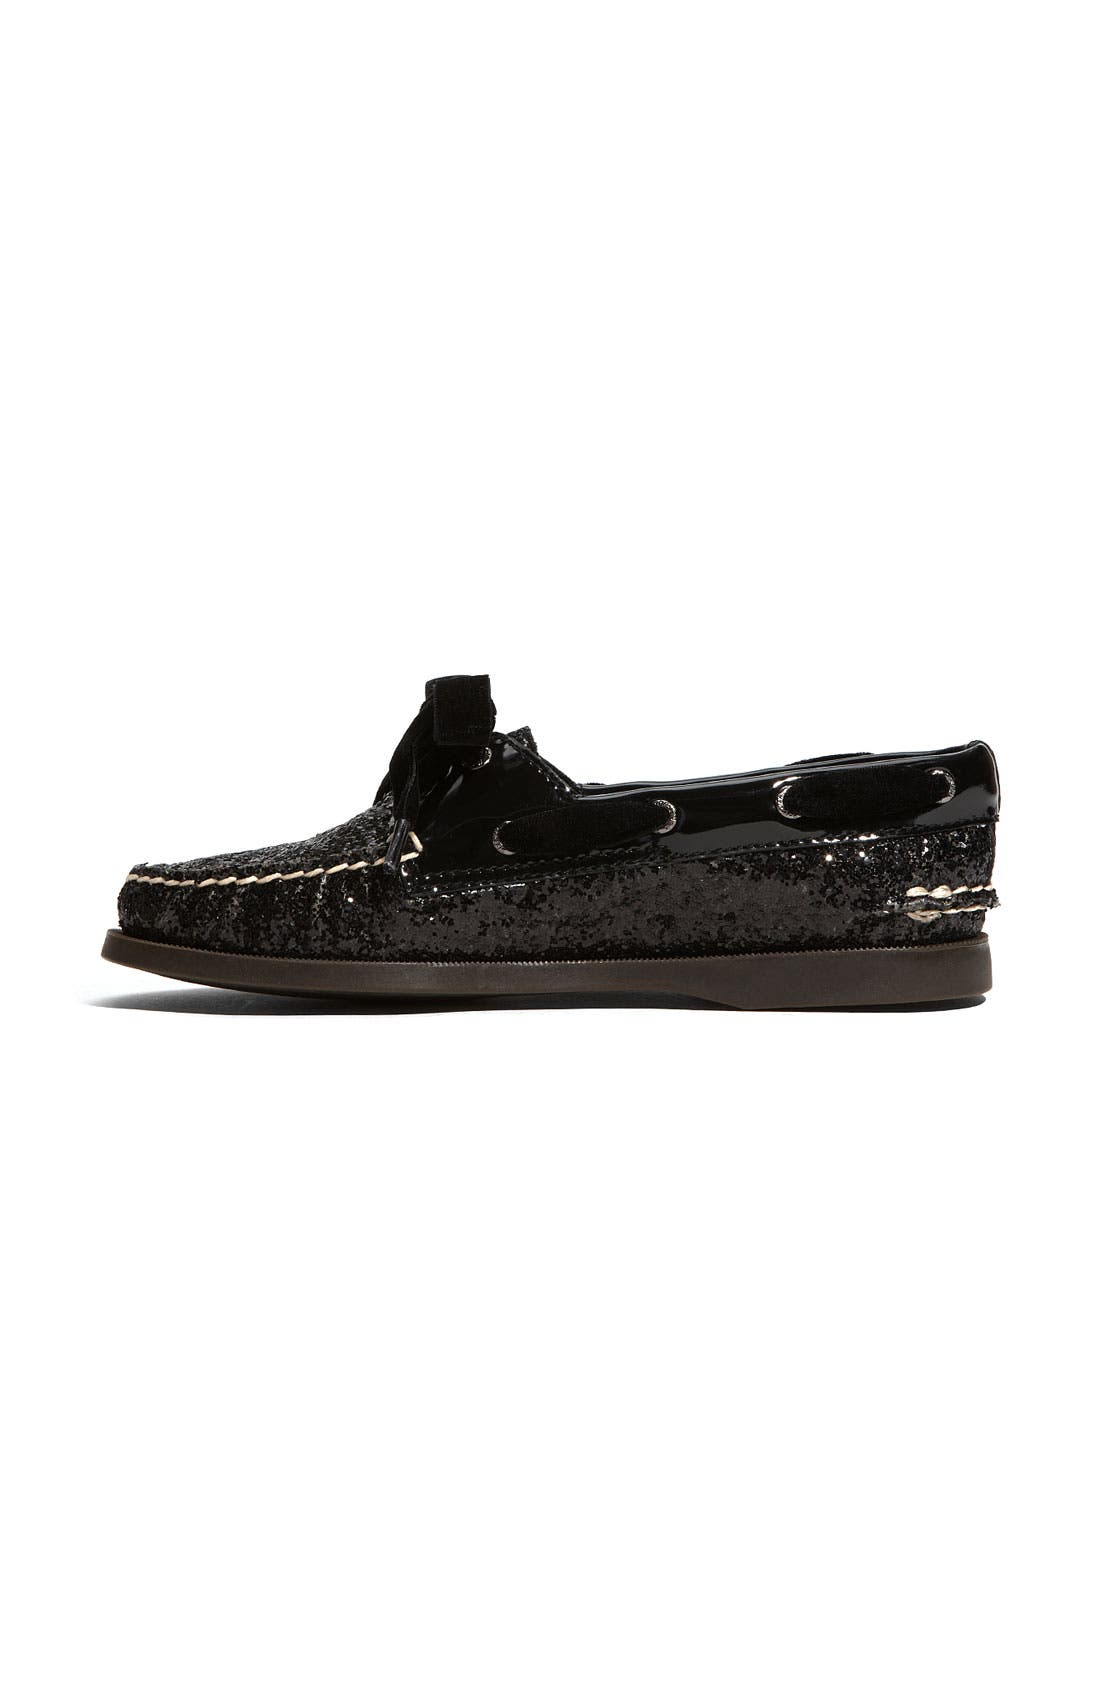 SPERRY,                             Top-Sider<sup>®</sup> 'Authentic Original Glitter' Boat Shoe,                             Alternate thumbnail 4, color,                             005